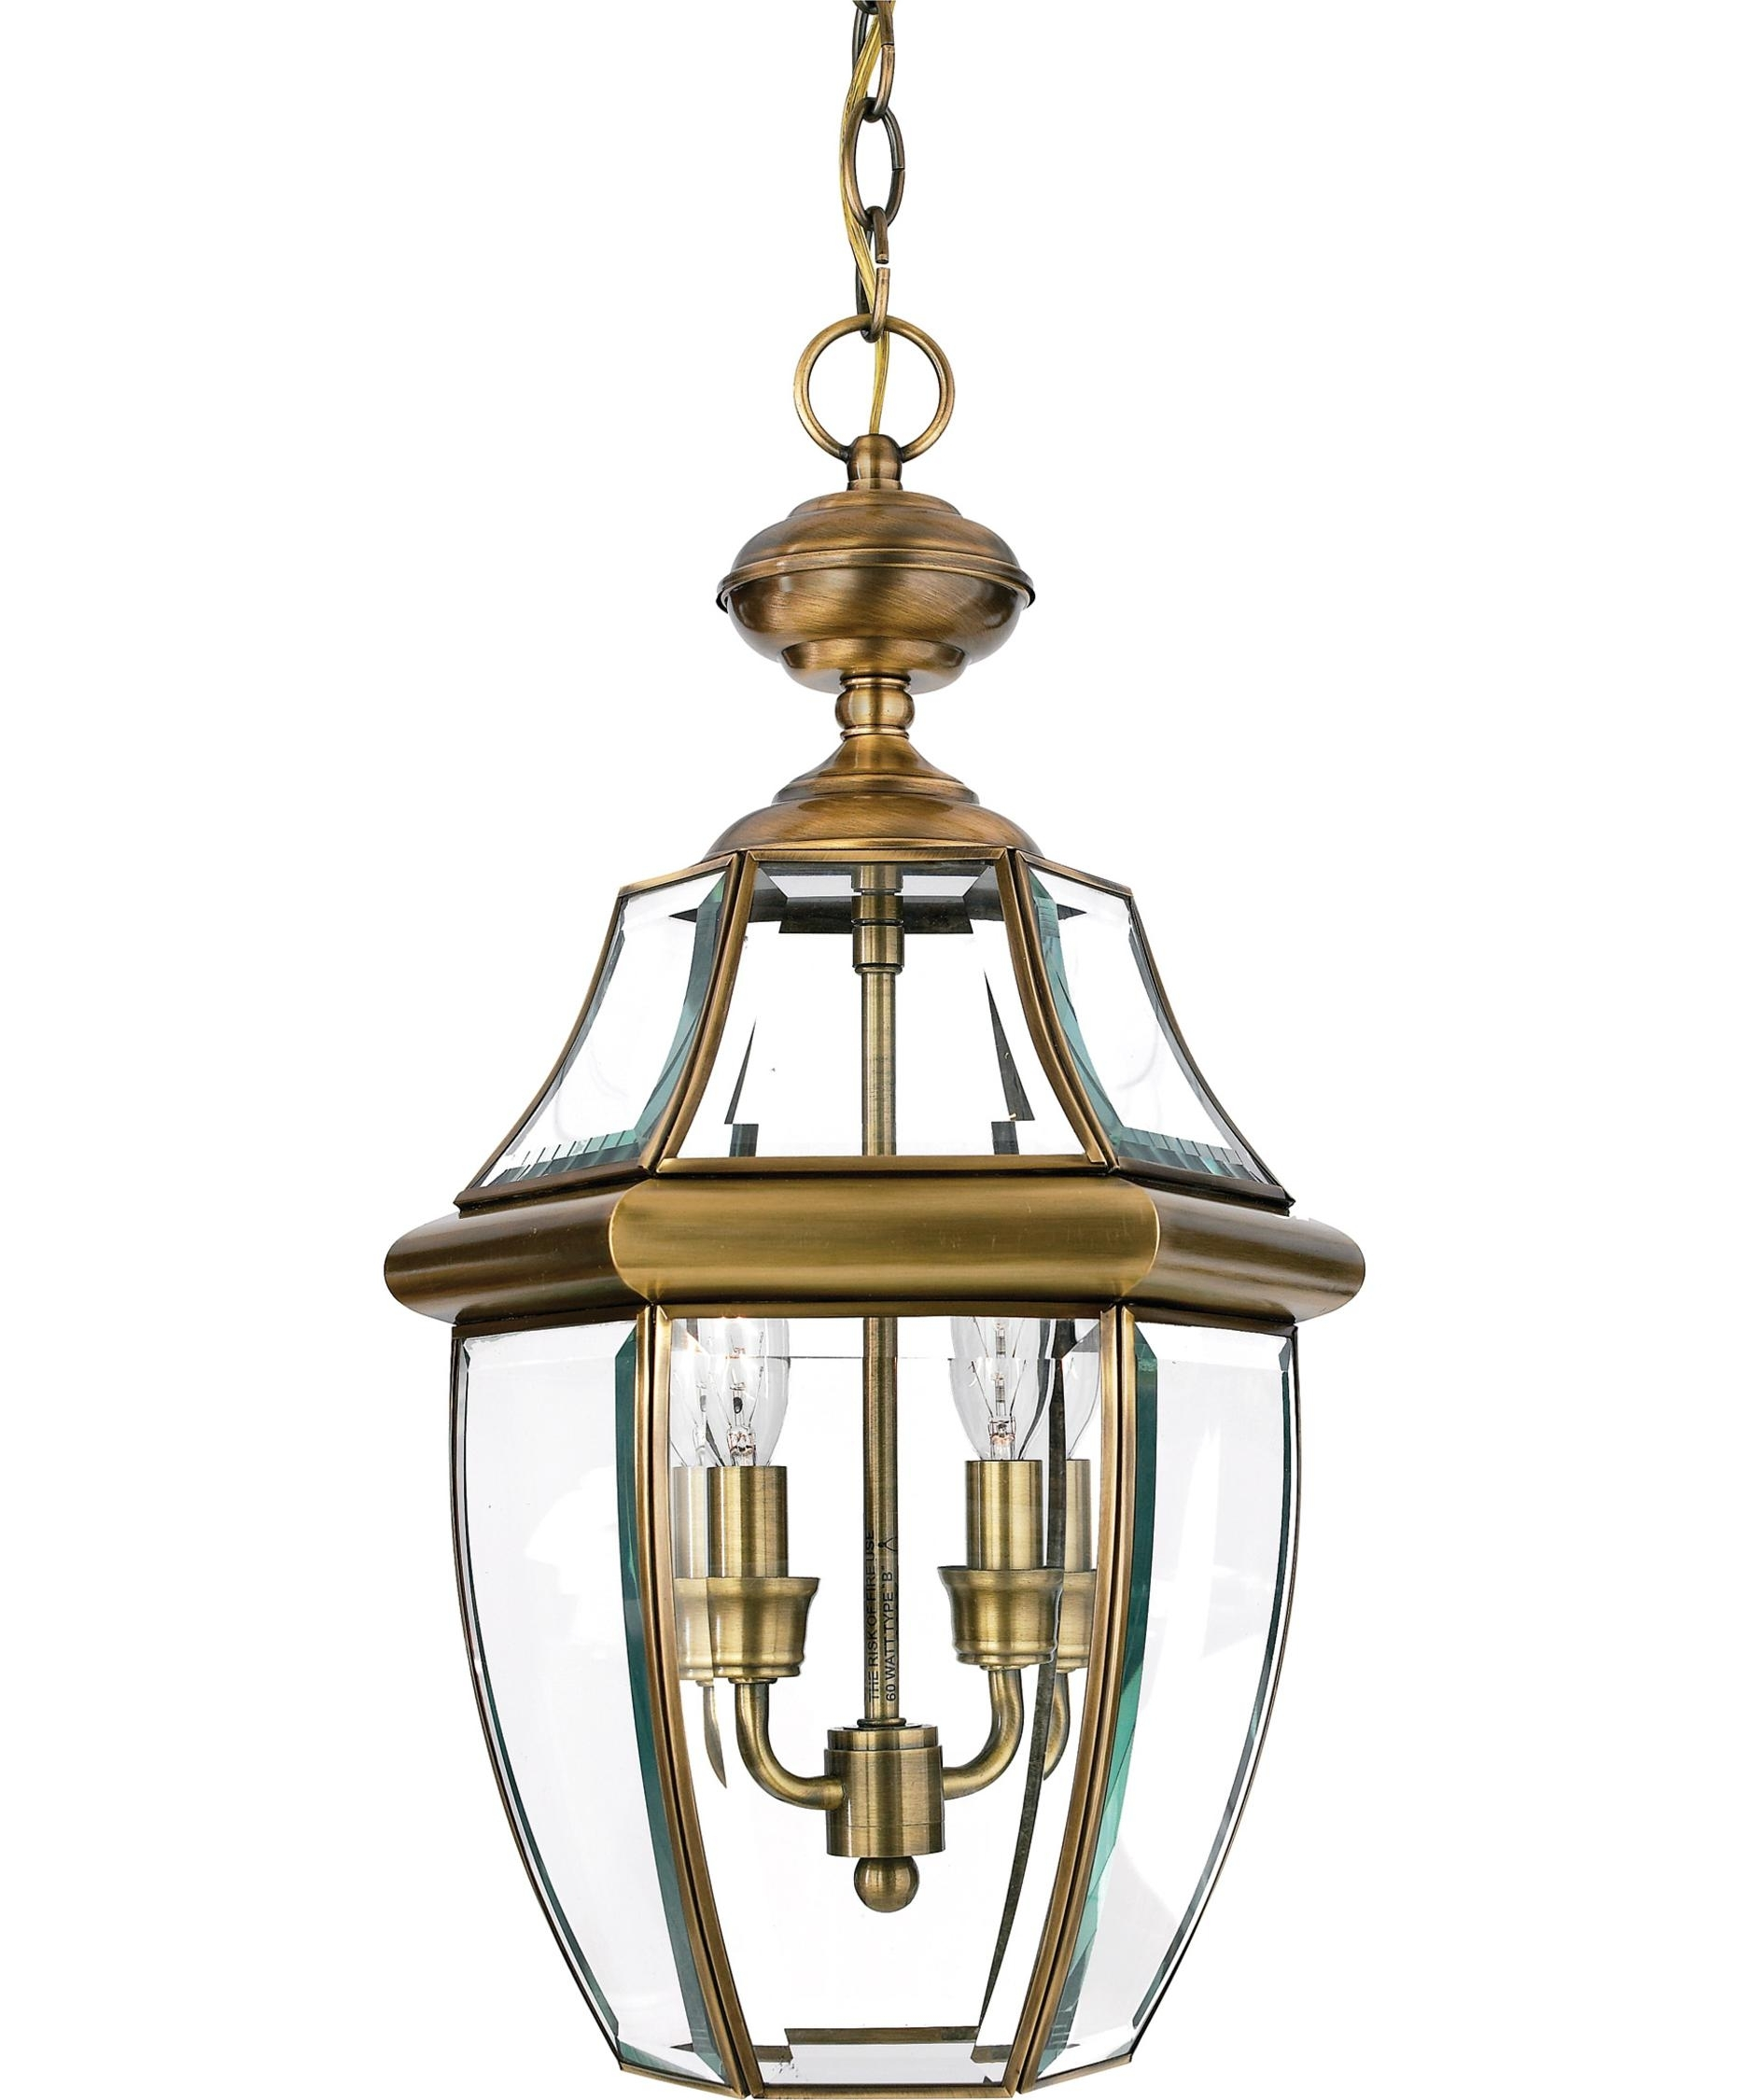 Inspiration about Quoizel Ny1178 Newbury 10 Inch Wide 2 Light Outdoor Hanging Lantern Within Outdoor Hanging Lights (#7 of 15)